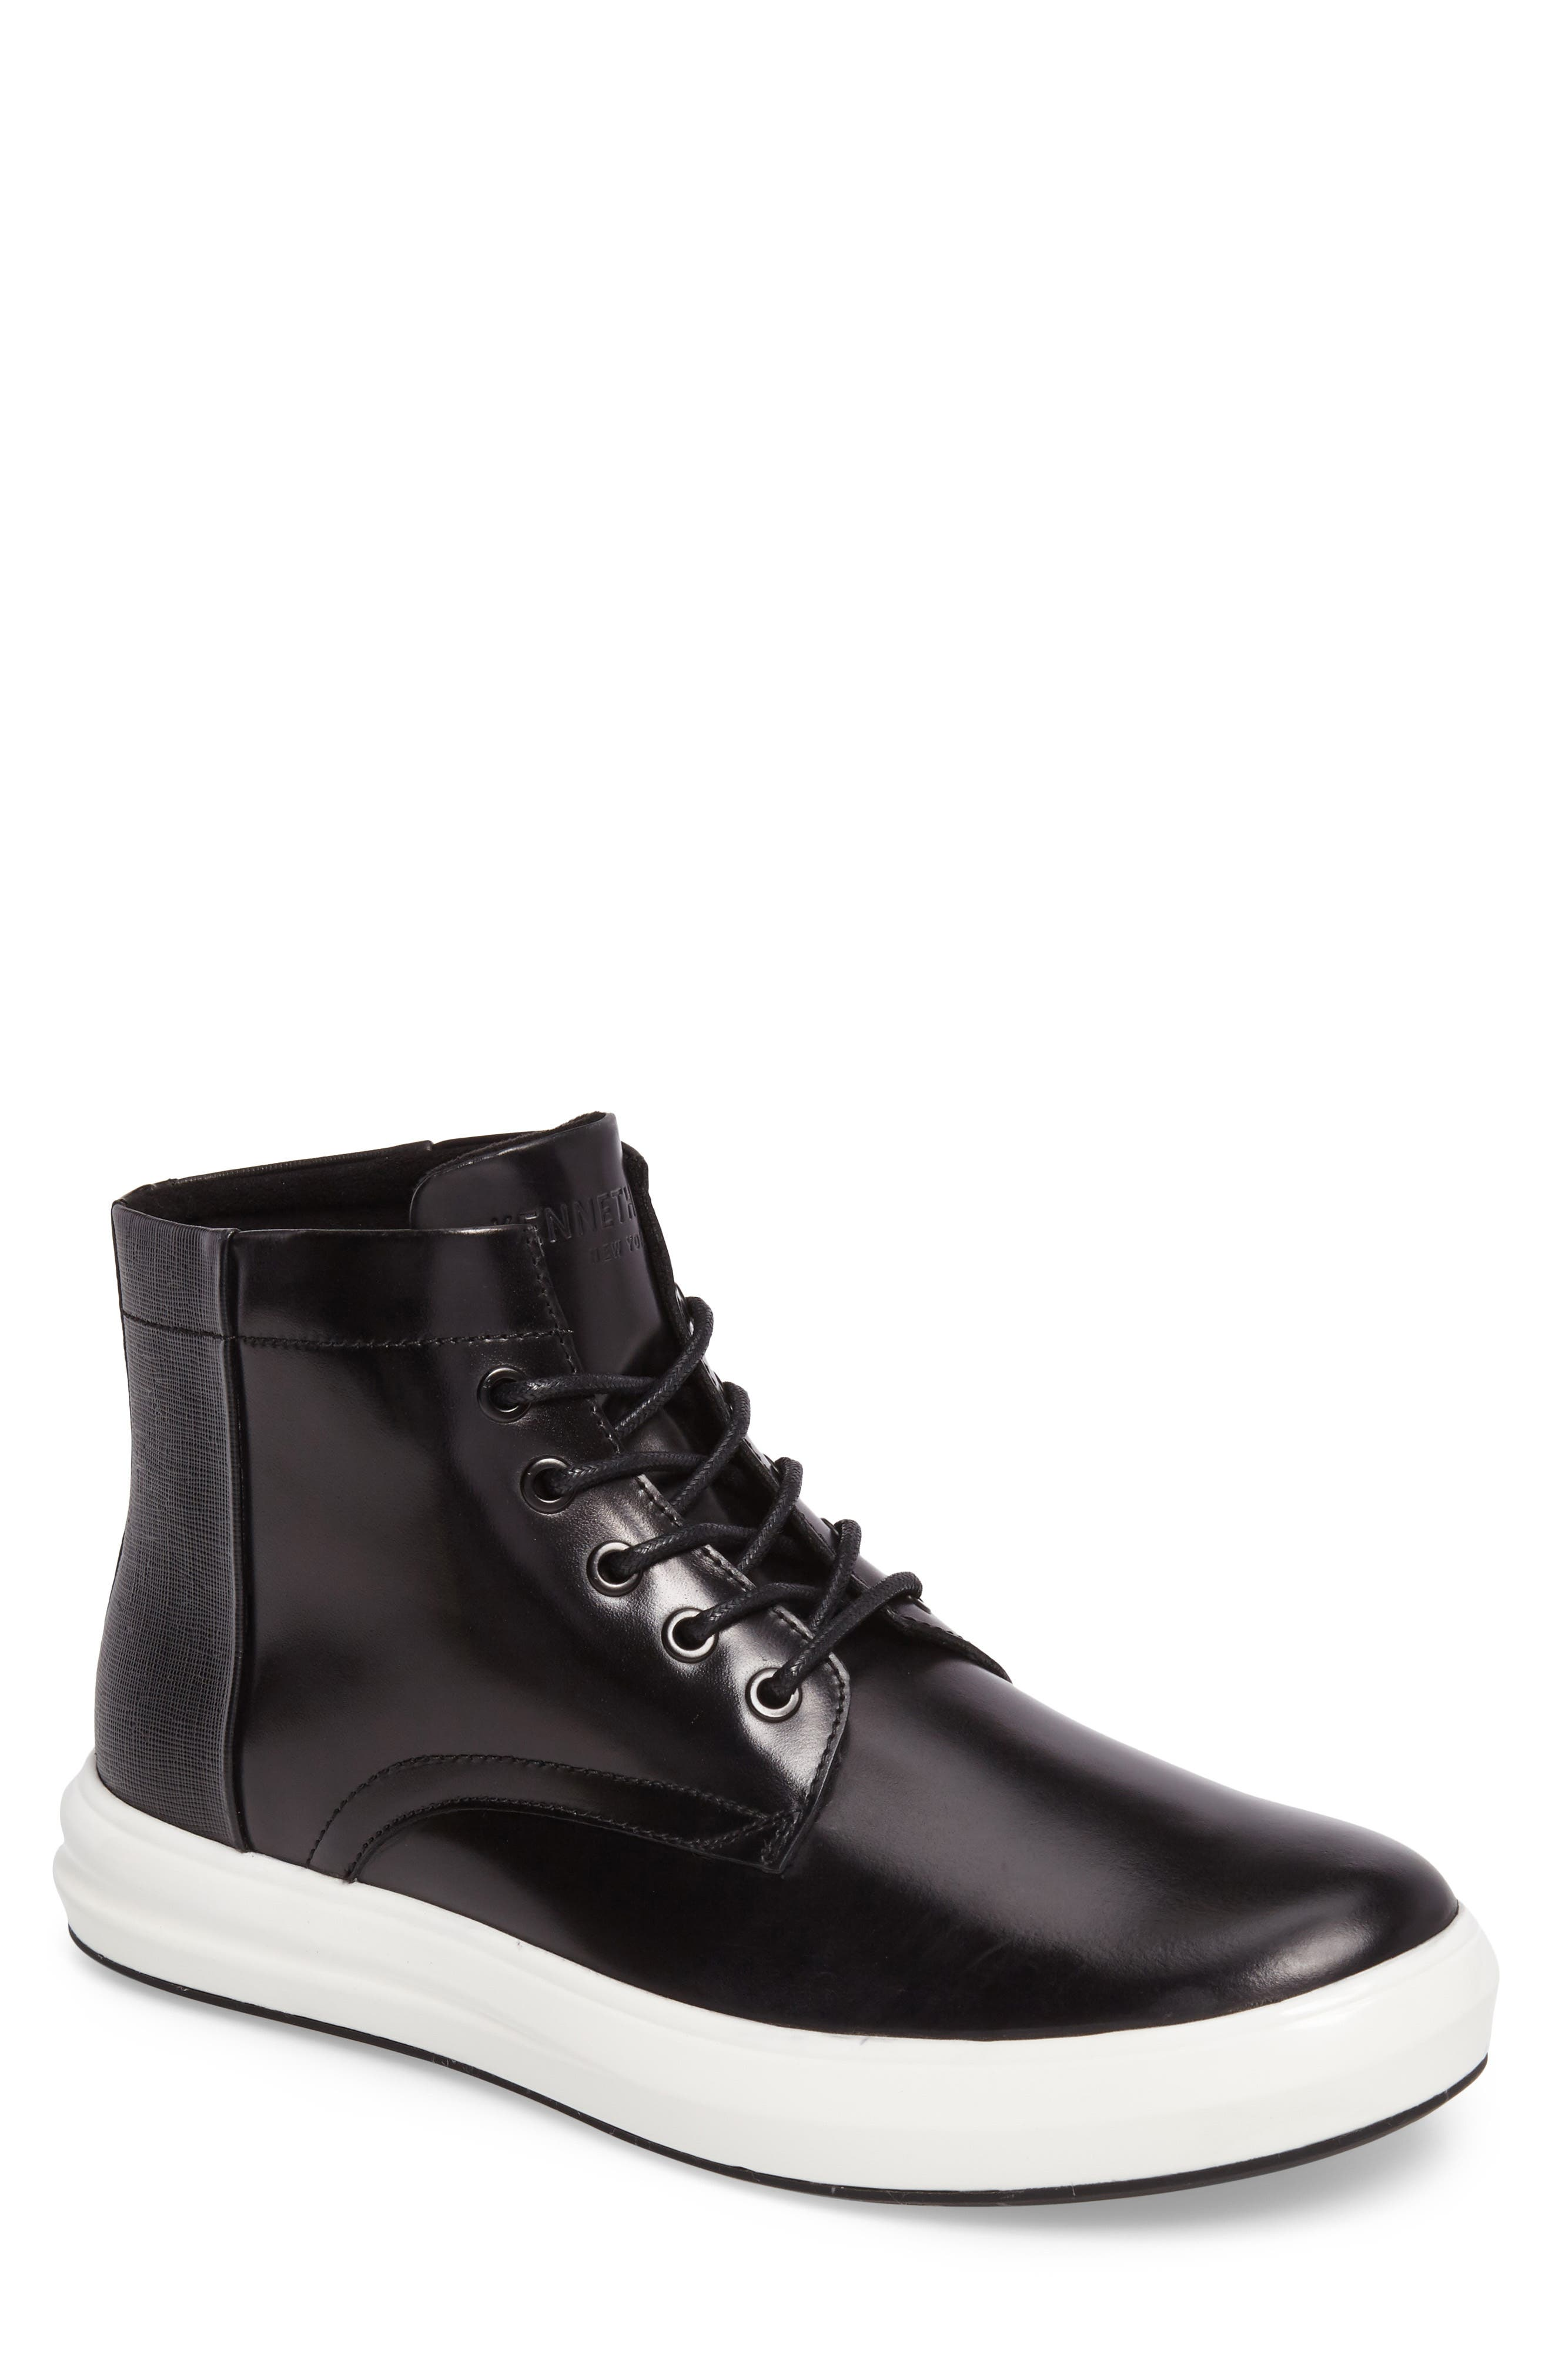 Kenneth Cole New York High Top Sneaker (Men)